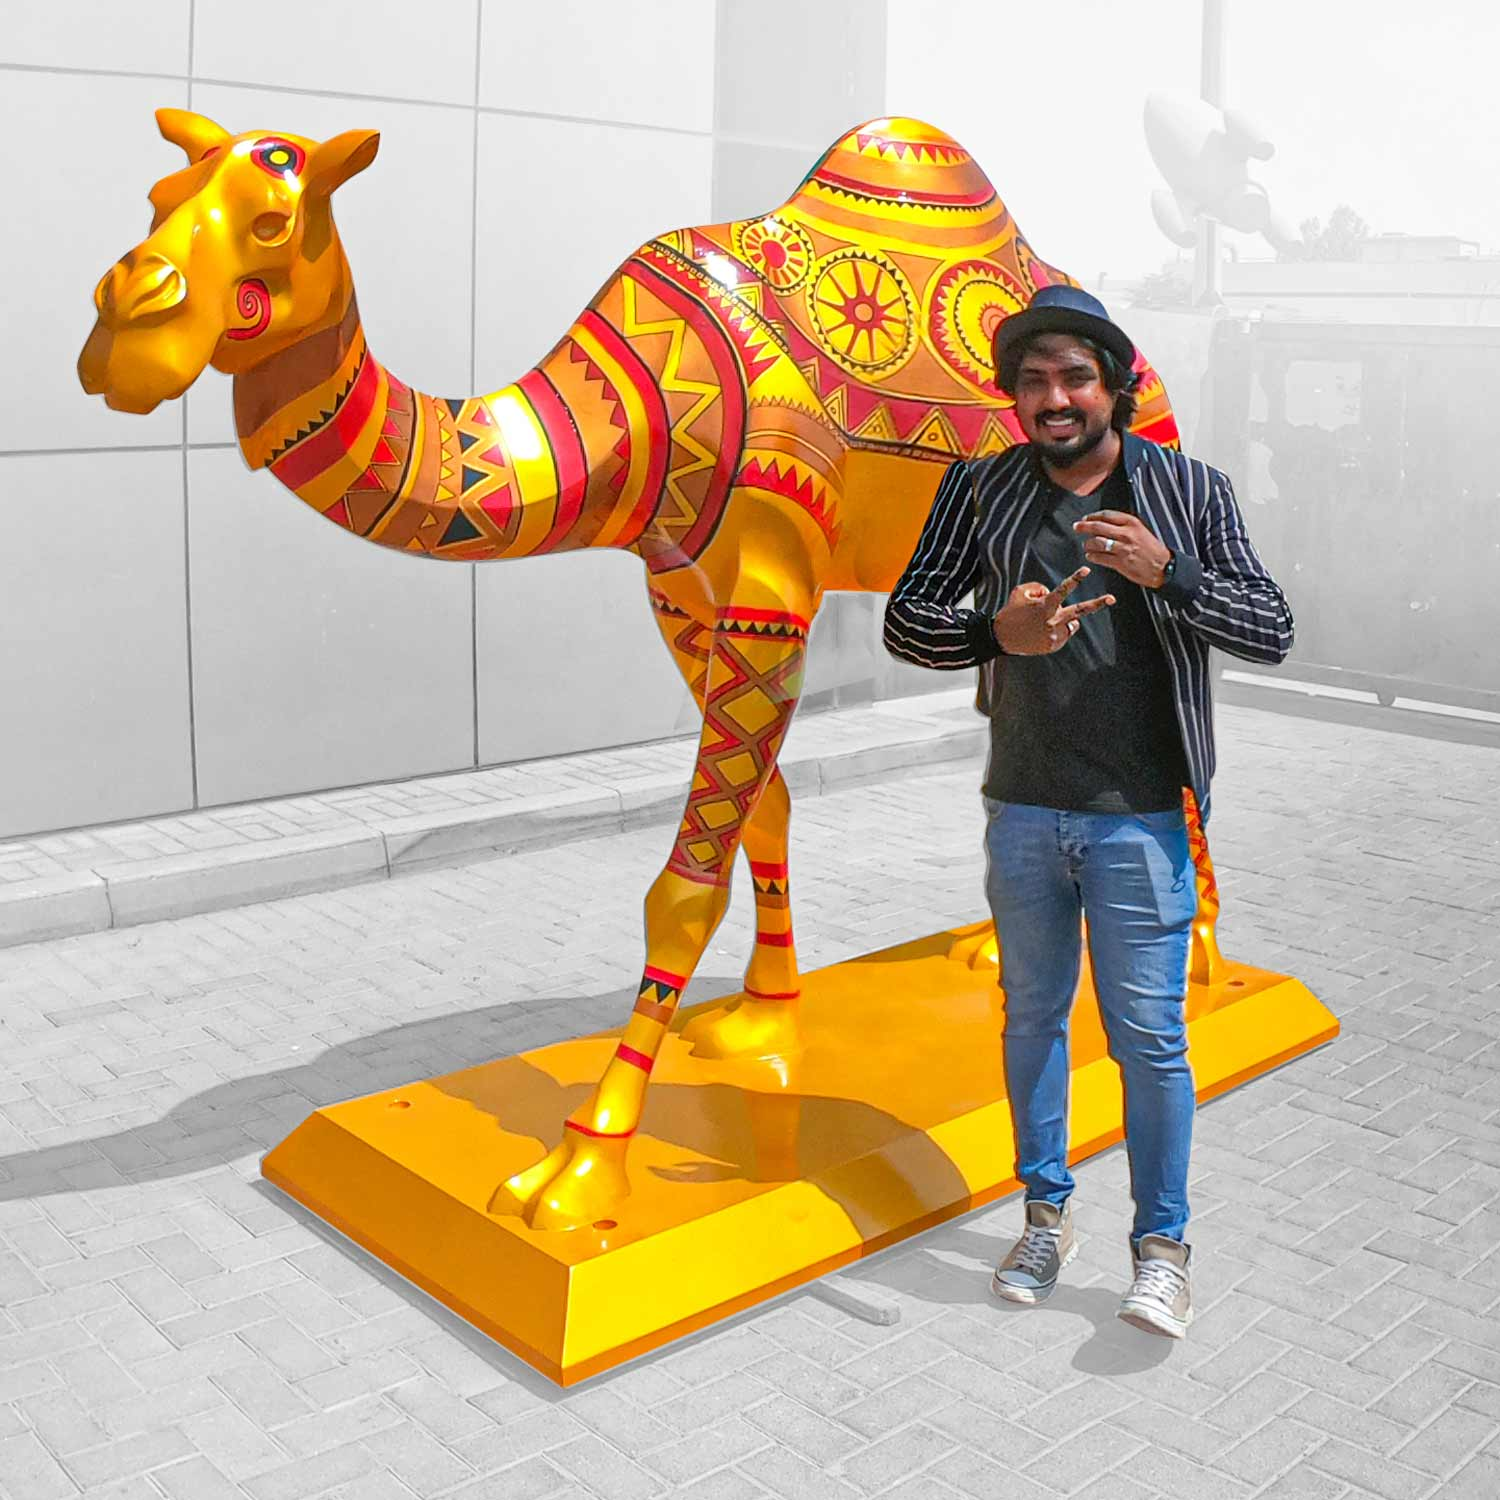 Mural on a life size camel sculpture in UAE